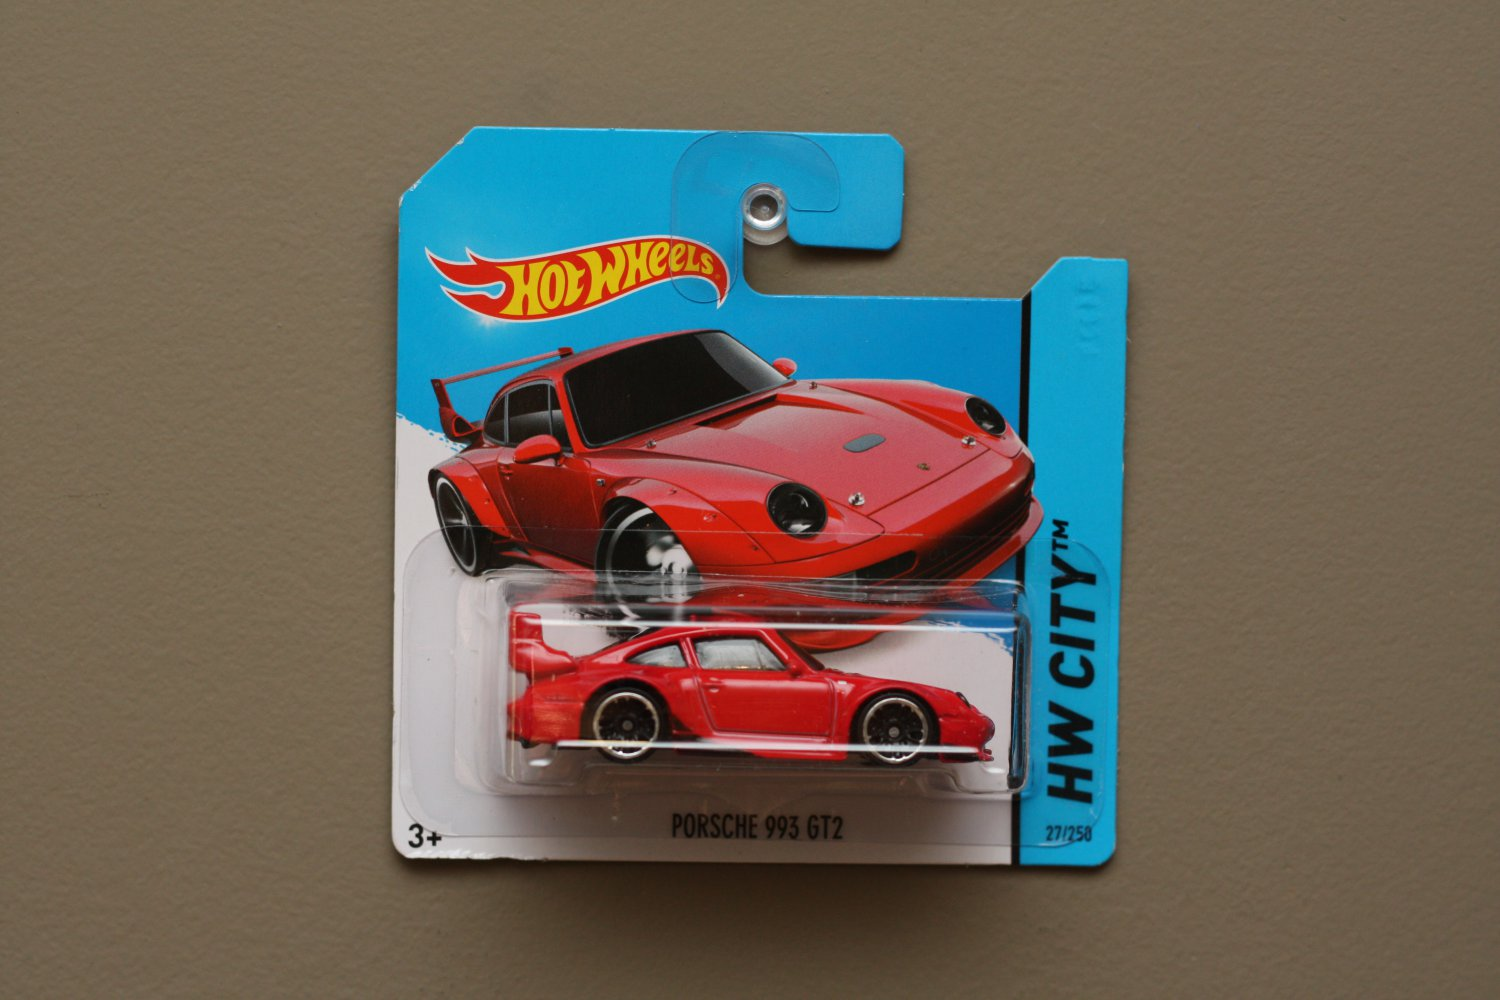 hot wheels 2014 hw city porsche 993 gt2 red. Black Bedroom Furniture Sets. Home Design Ideas